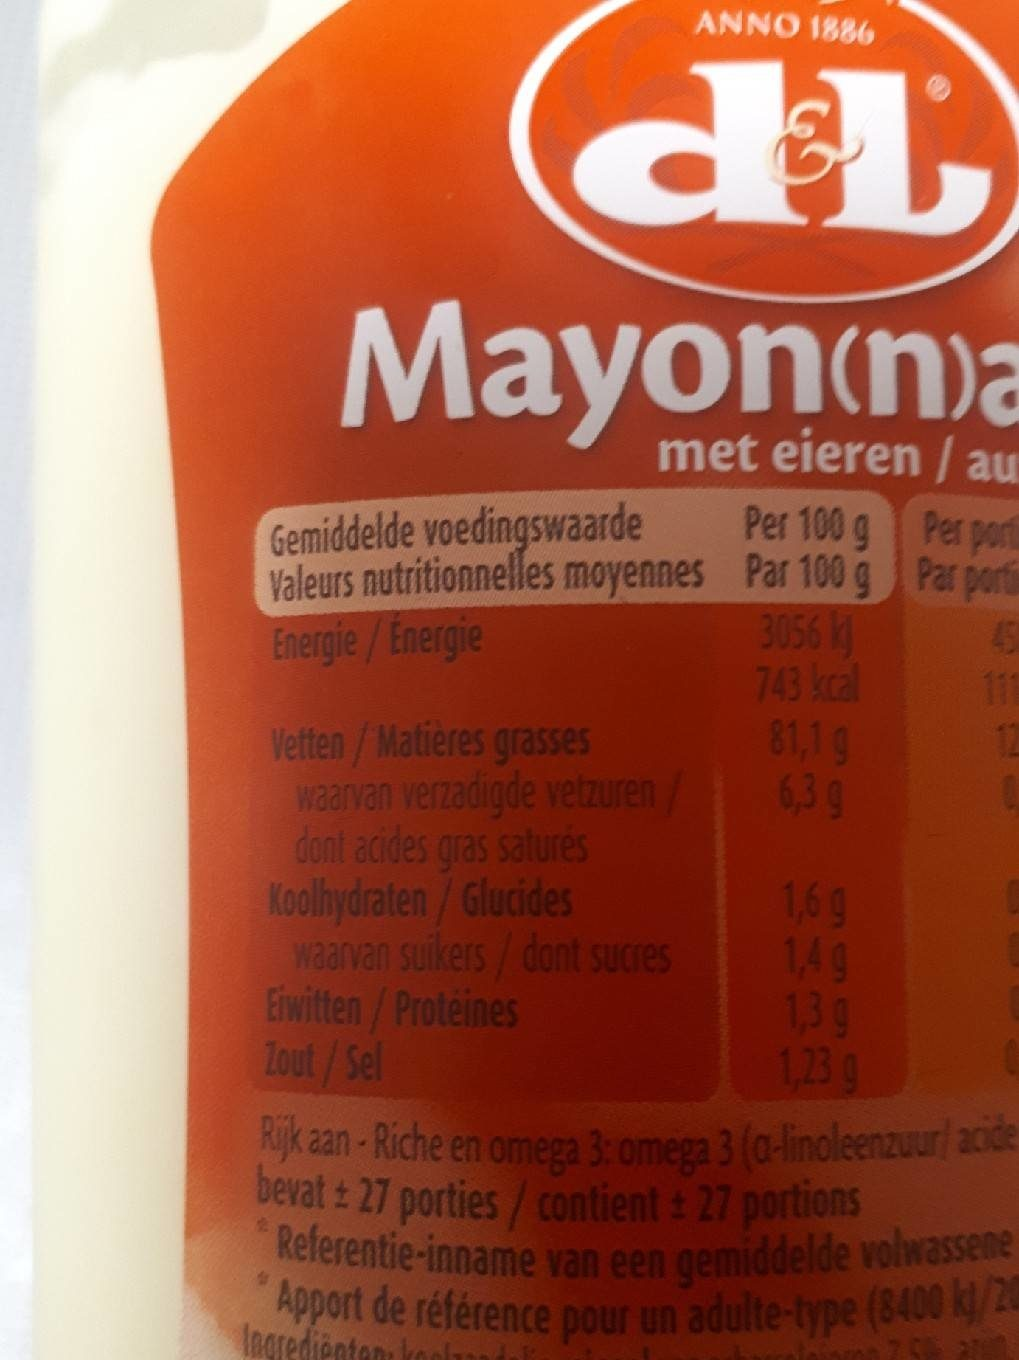 Mayon(n)aise - Nutrition facts